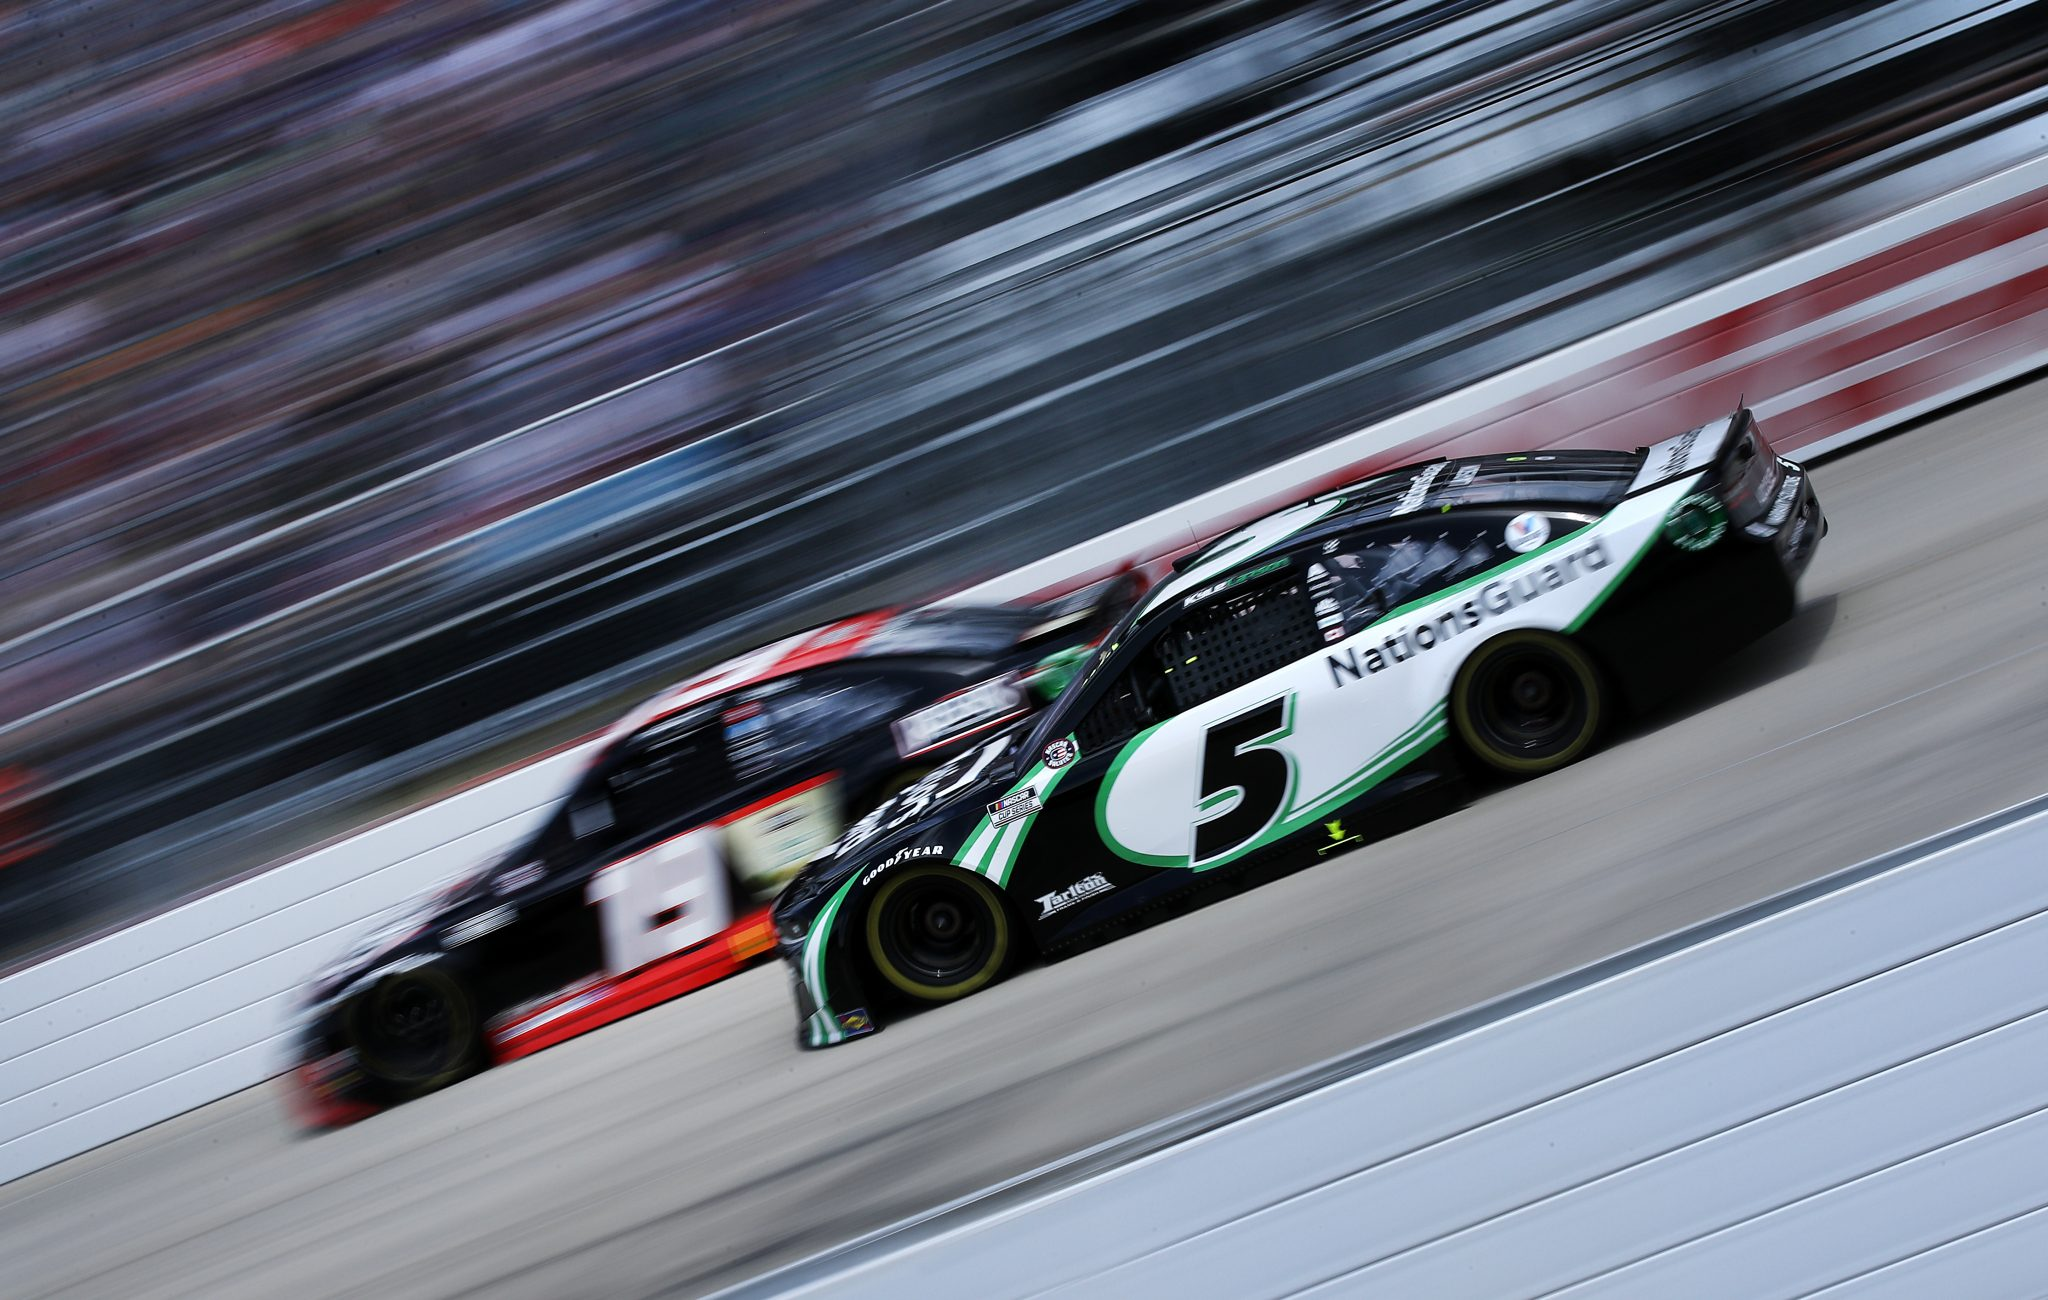 DOVER, DELAWARE - MAY 16: Kyle Larson, driver of the #5 NationsGuard Chevrolet, and Martin Truex Jr., driver of the #19 Reser's Fine Foods Toyota, race during the NASCAR Cup Series Drydene 400 at Dover International Speedway on May 16, 2021 in Dover, Delaware. (Photo by Sean Gardner/Getty Images) | Getty Images